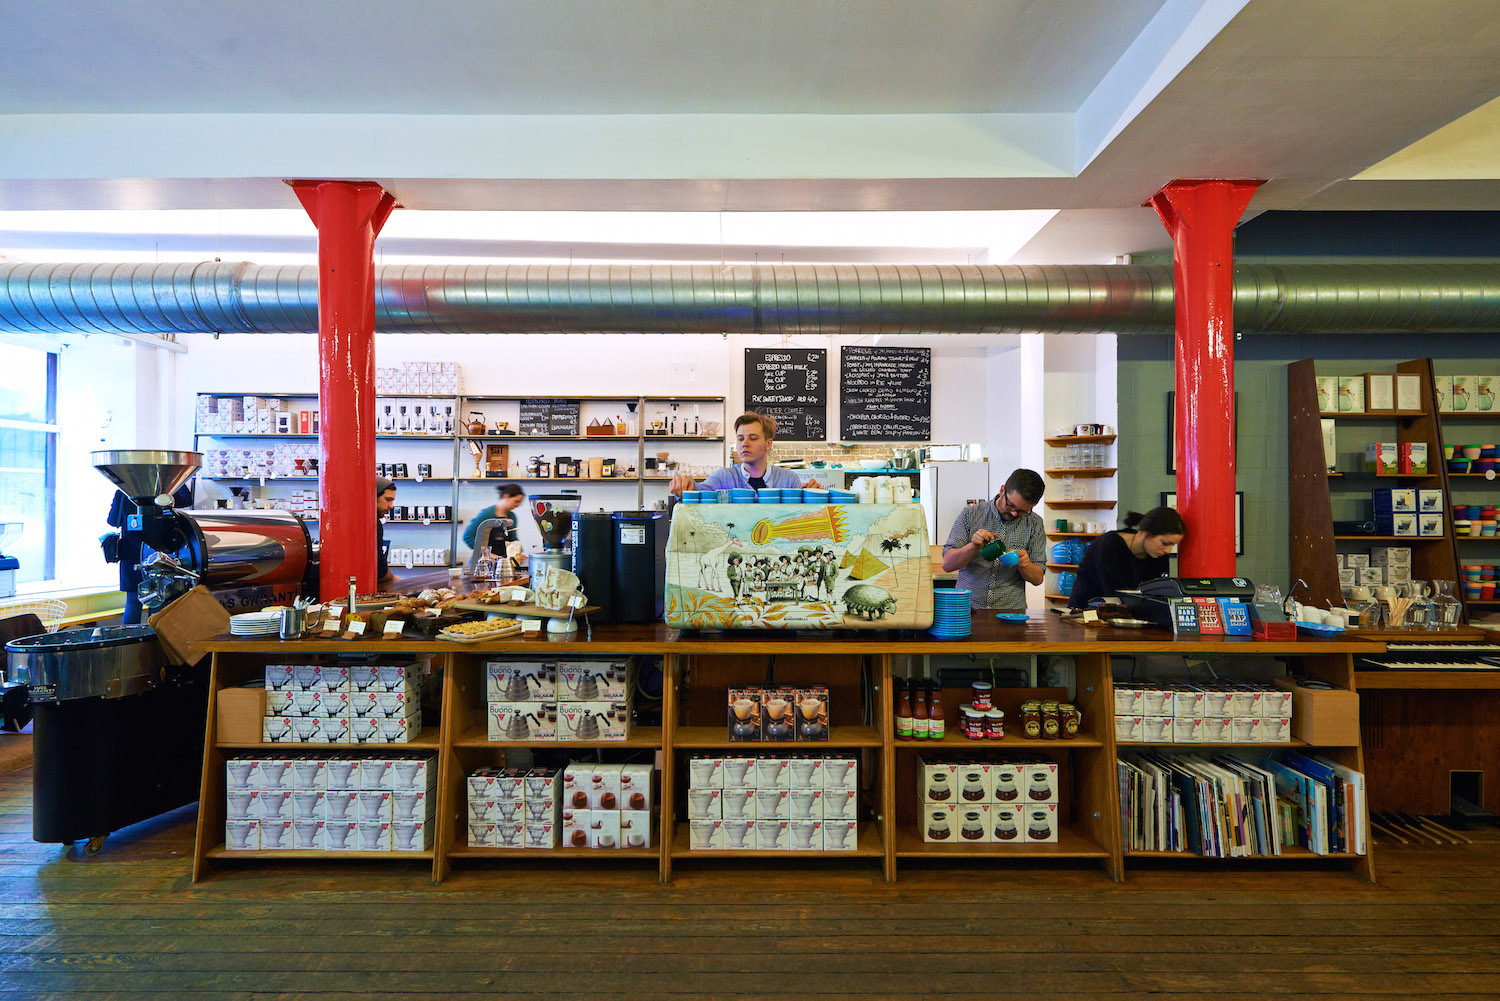 The Best Working Cafes - Prufrock